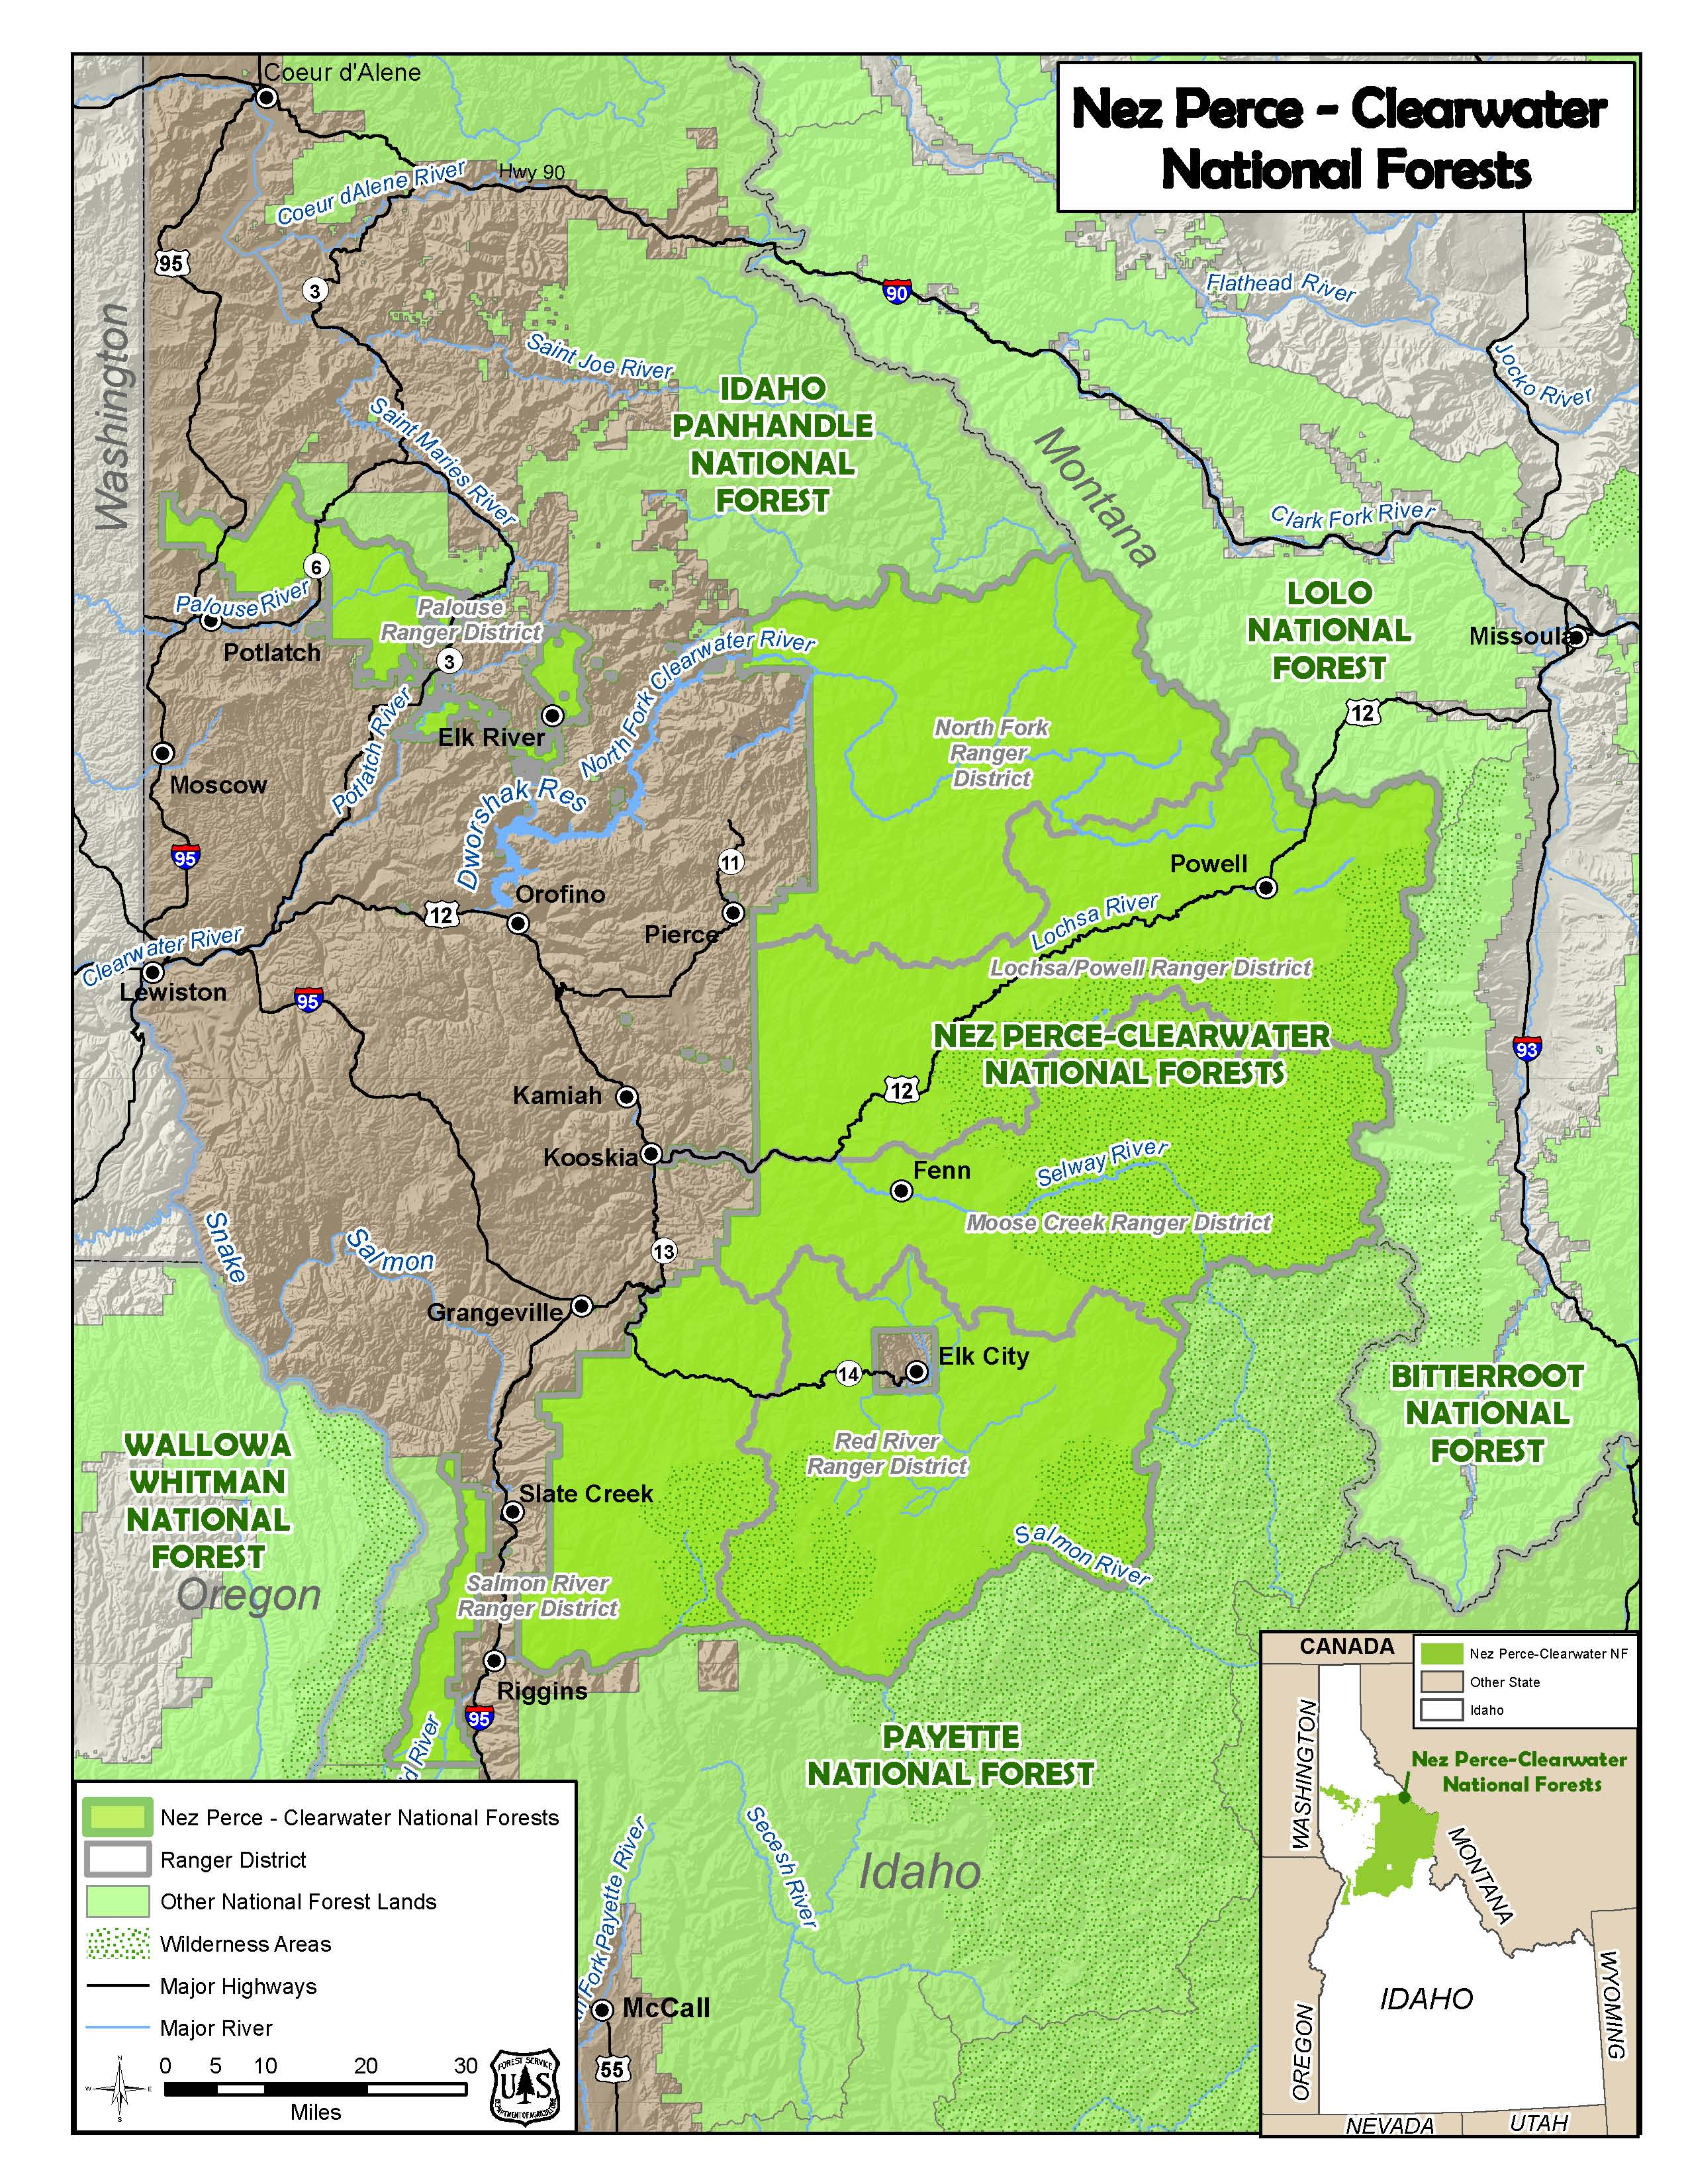 Nez PerceClearwater National Forests Maps Publications